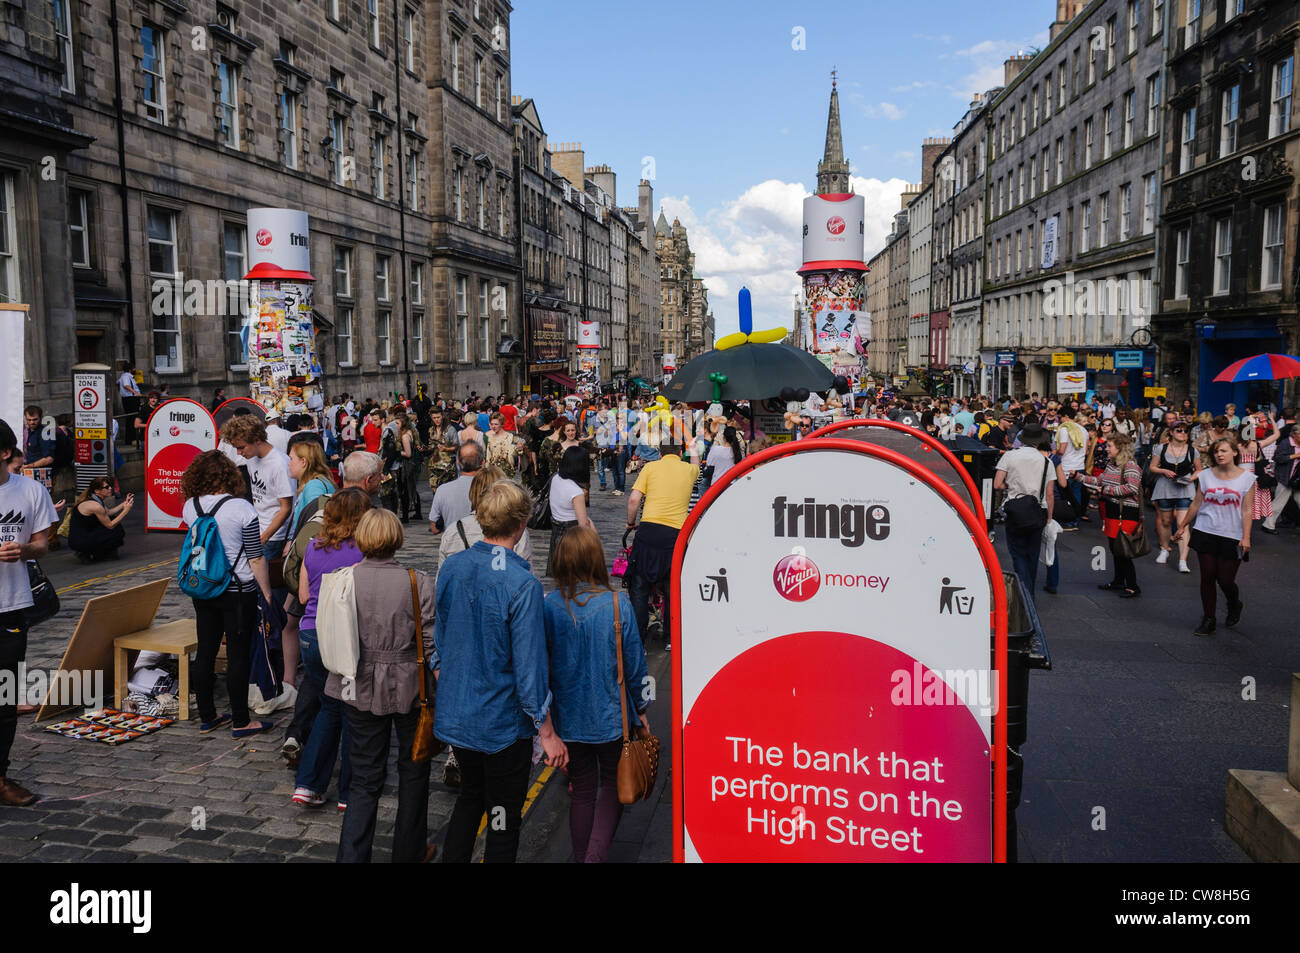 Crowds on the Royal Mile during the Edinburgh Festival with acts from the Fringe performing for free - Stock Image